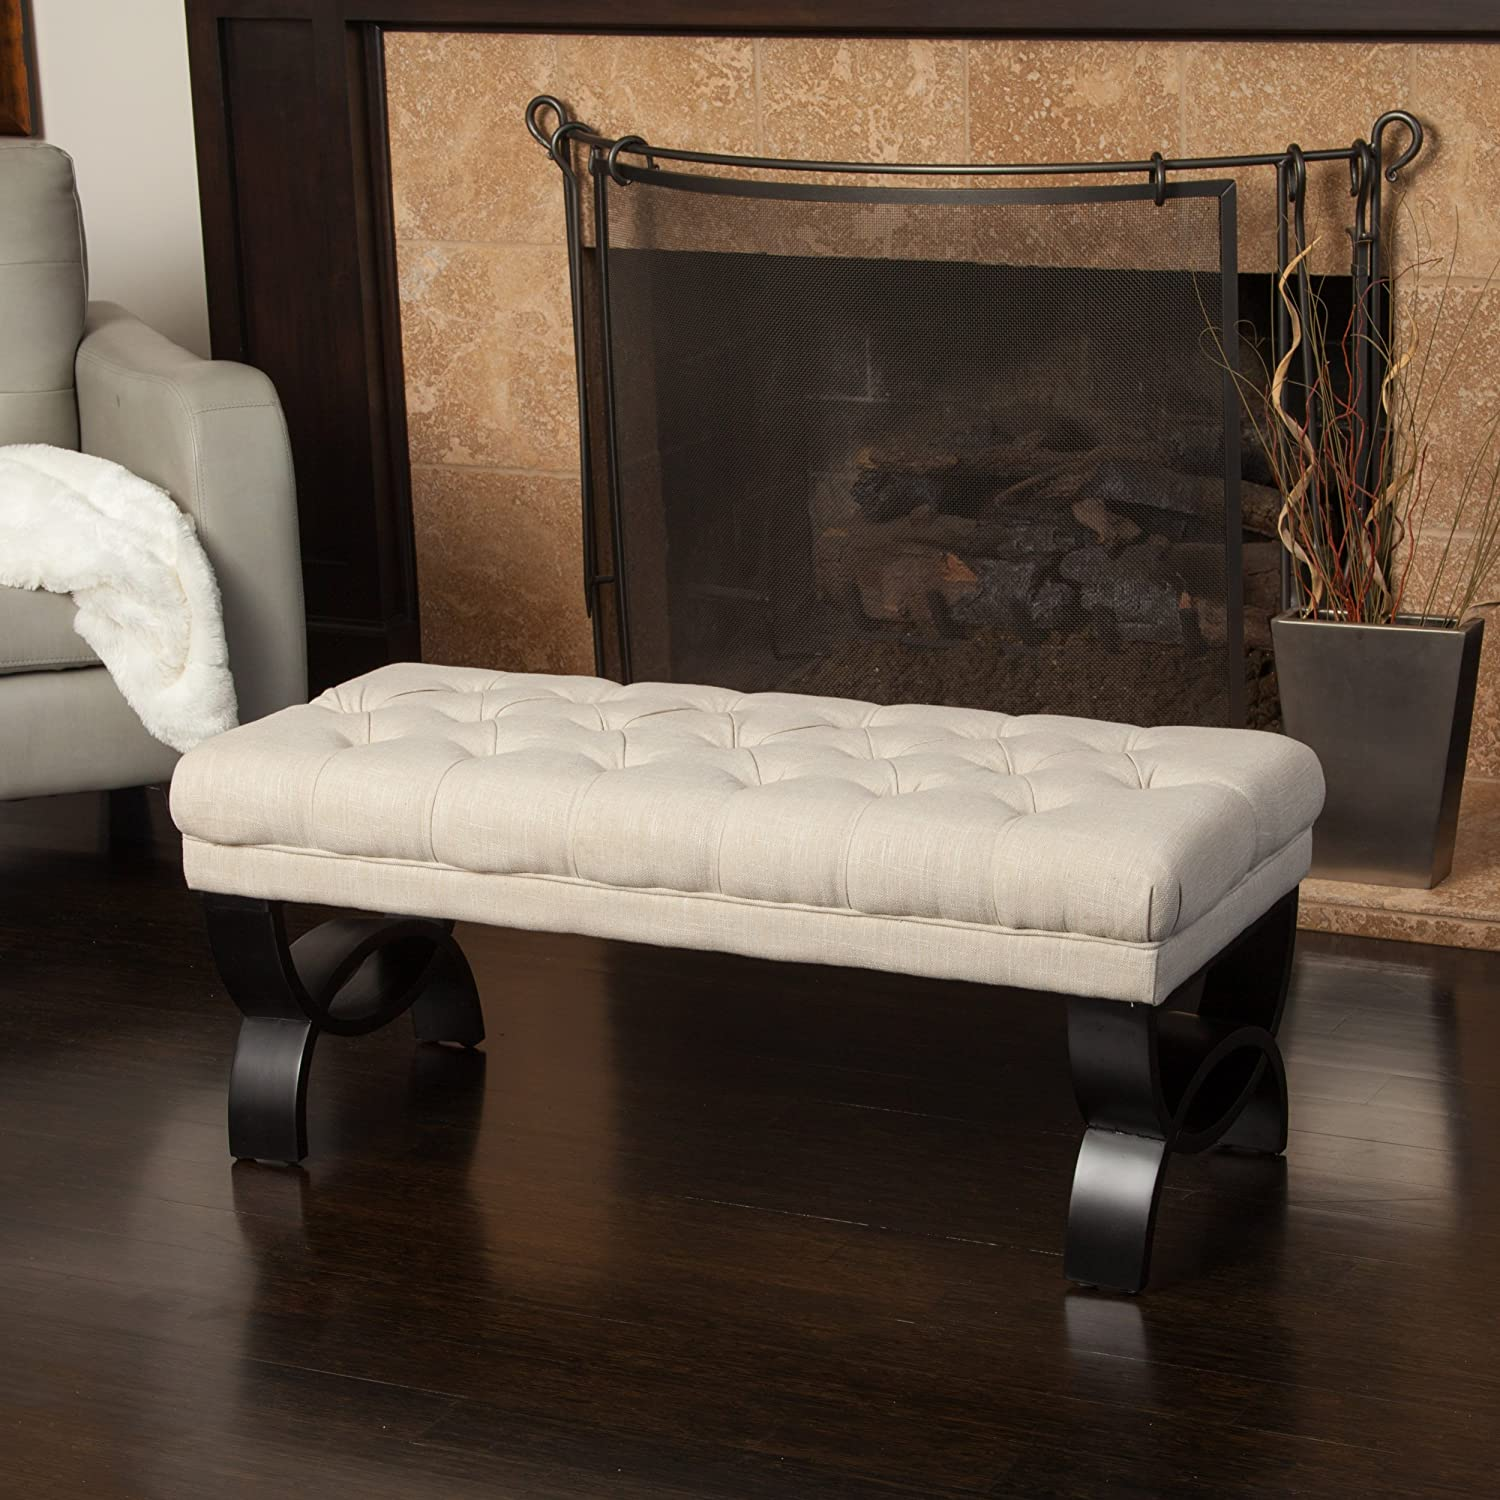 Christopher Knight Home 239302 Colette Ottoman Bench